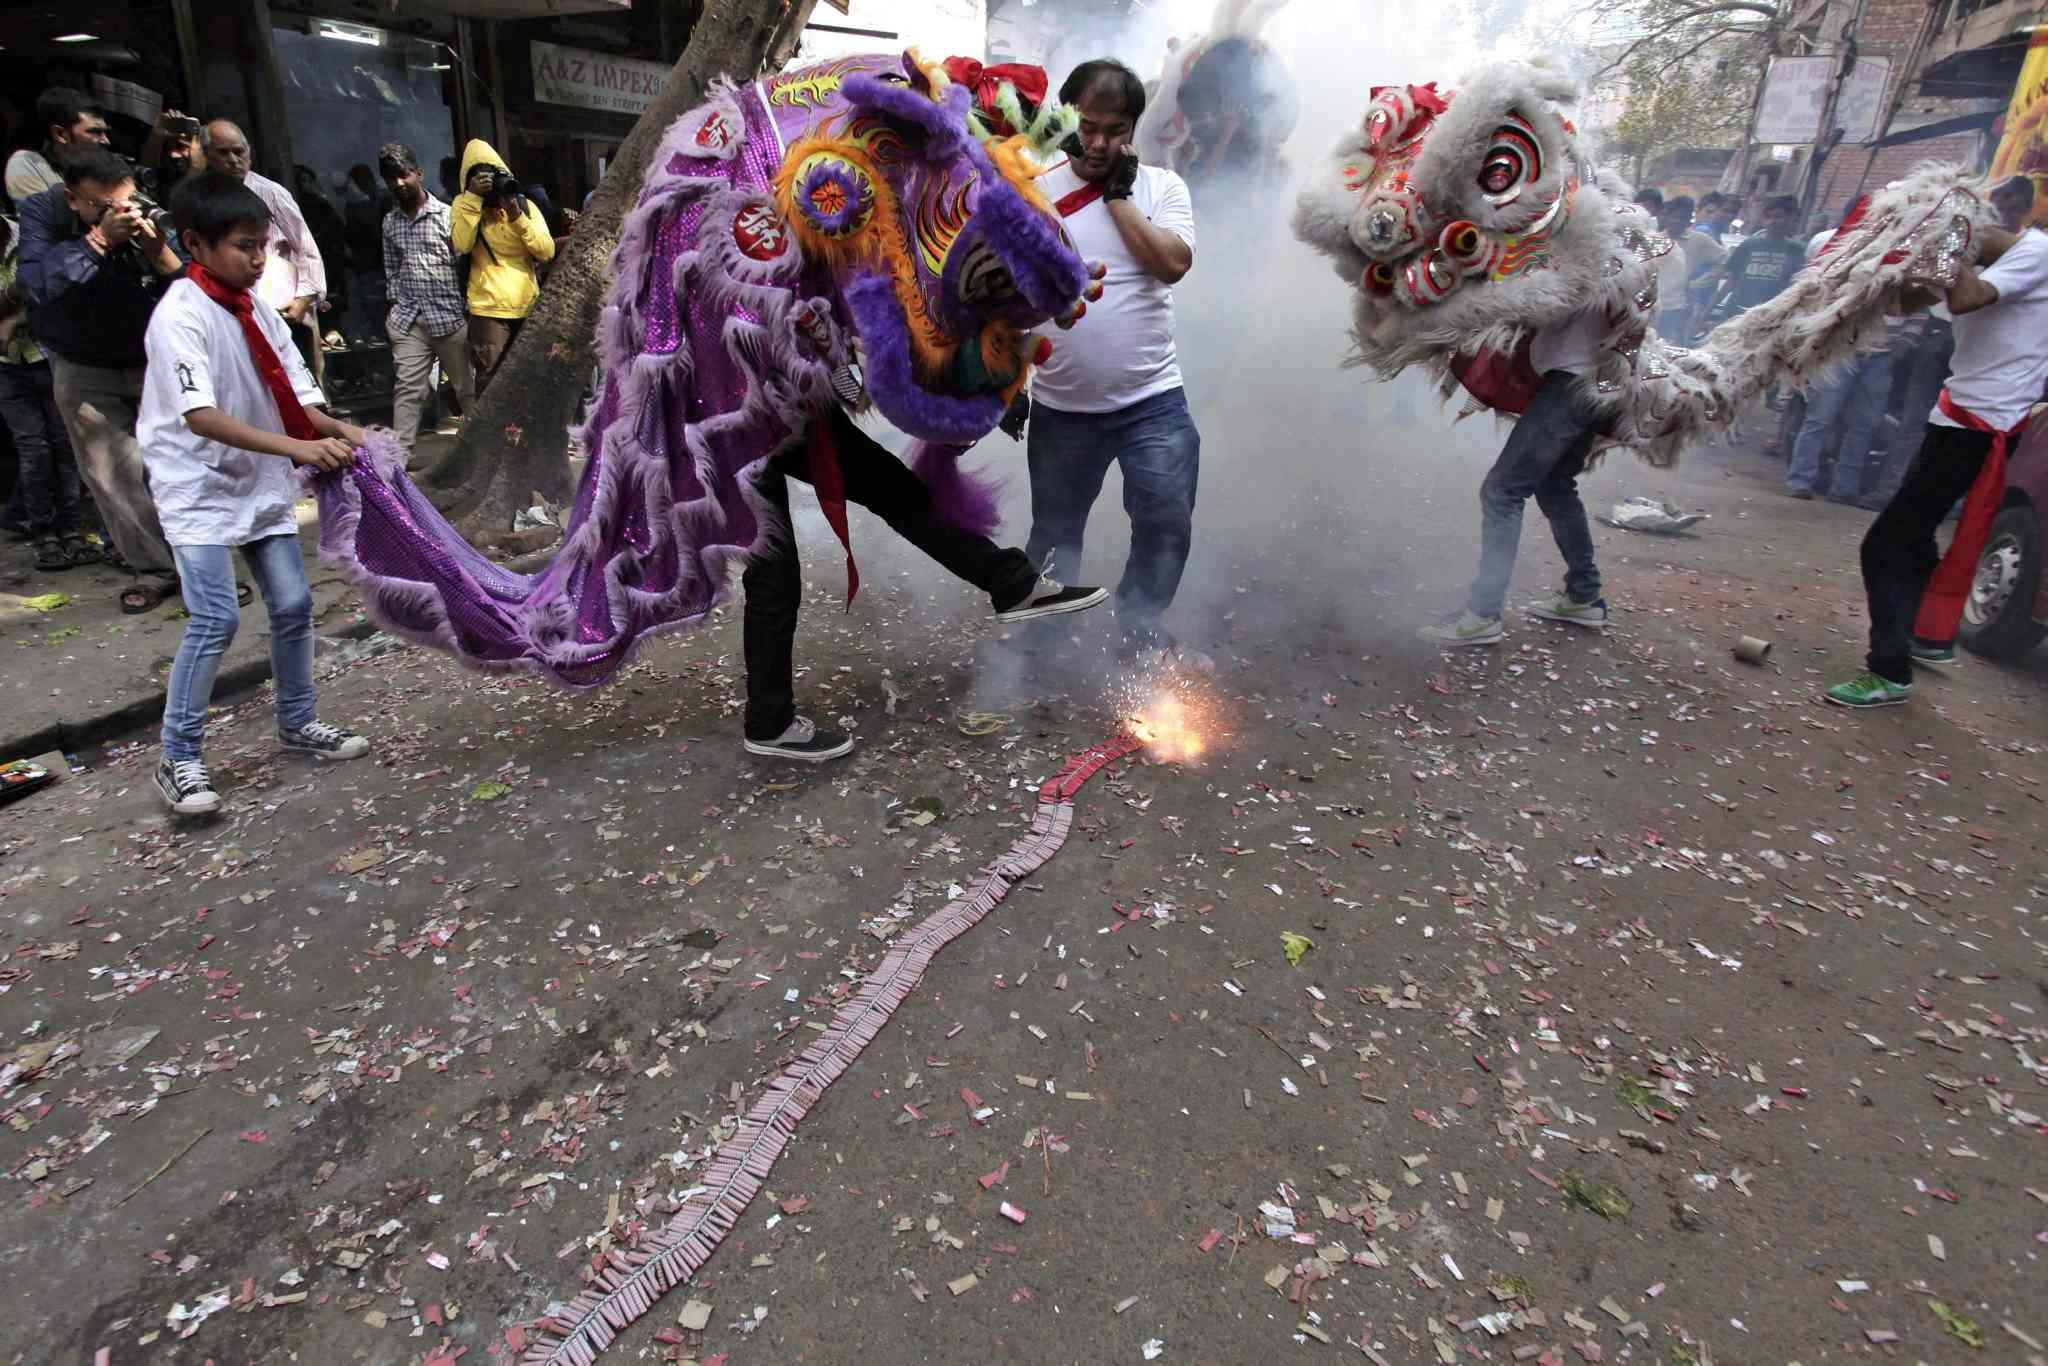 Chinese Lion dancers perform amid exploding fire crackers during Chinese New Year celebrations in Kolkata, India on Friday, Jan. 31, 2014.